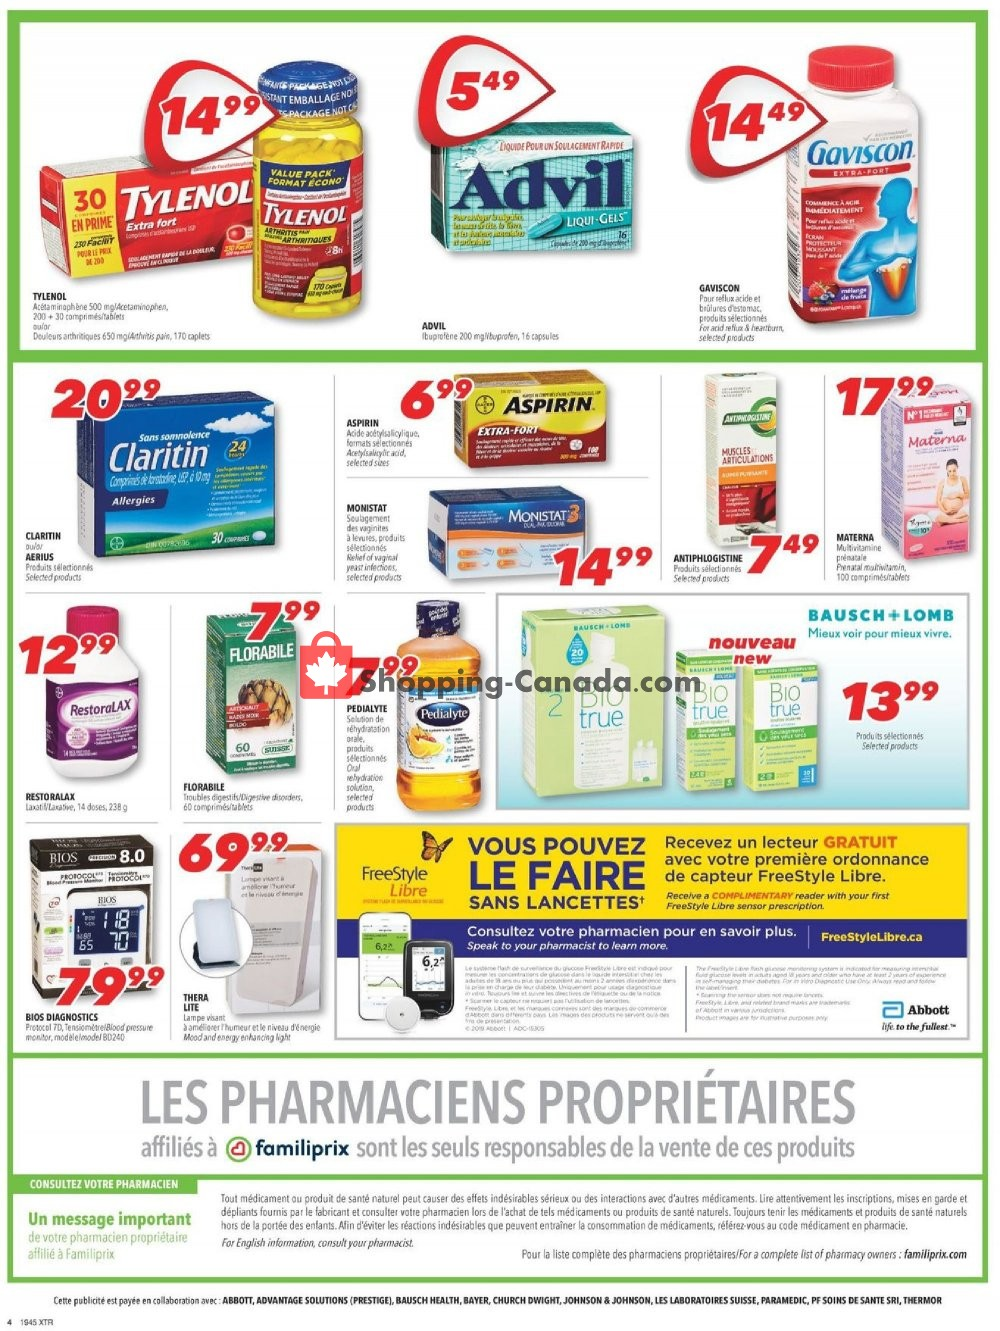 Flyer Familiprix Canada - from Thursday November 7, 2019 to Wednesday November 13, 2019